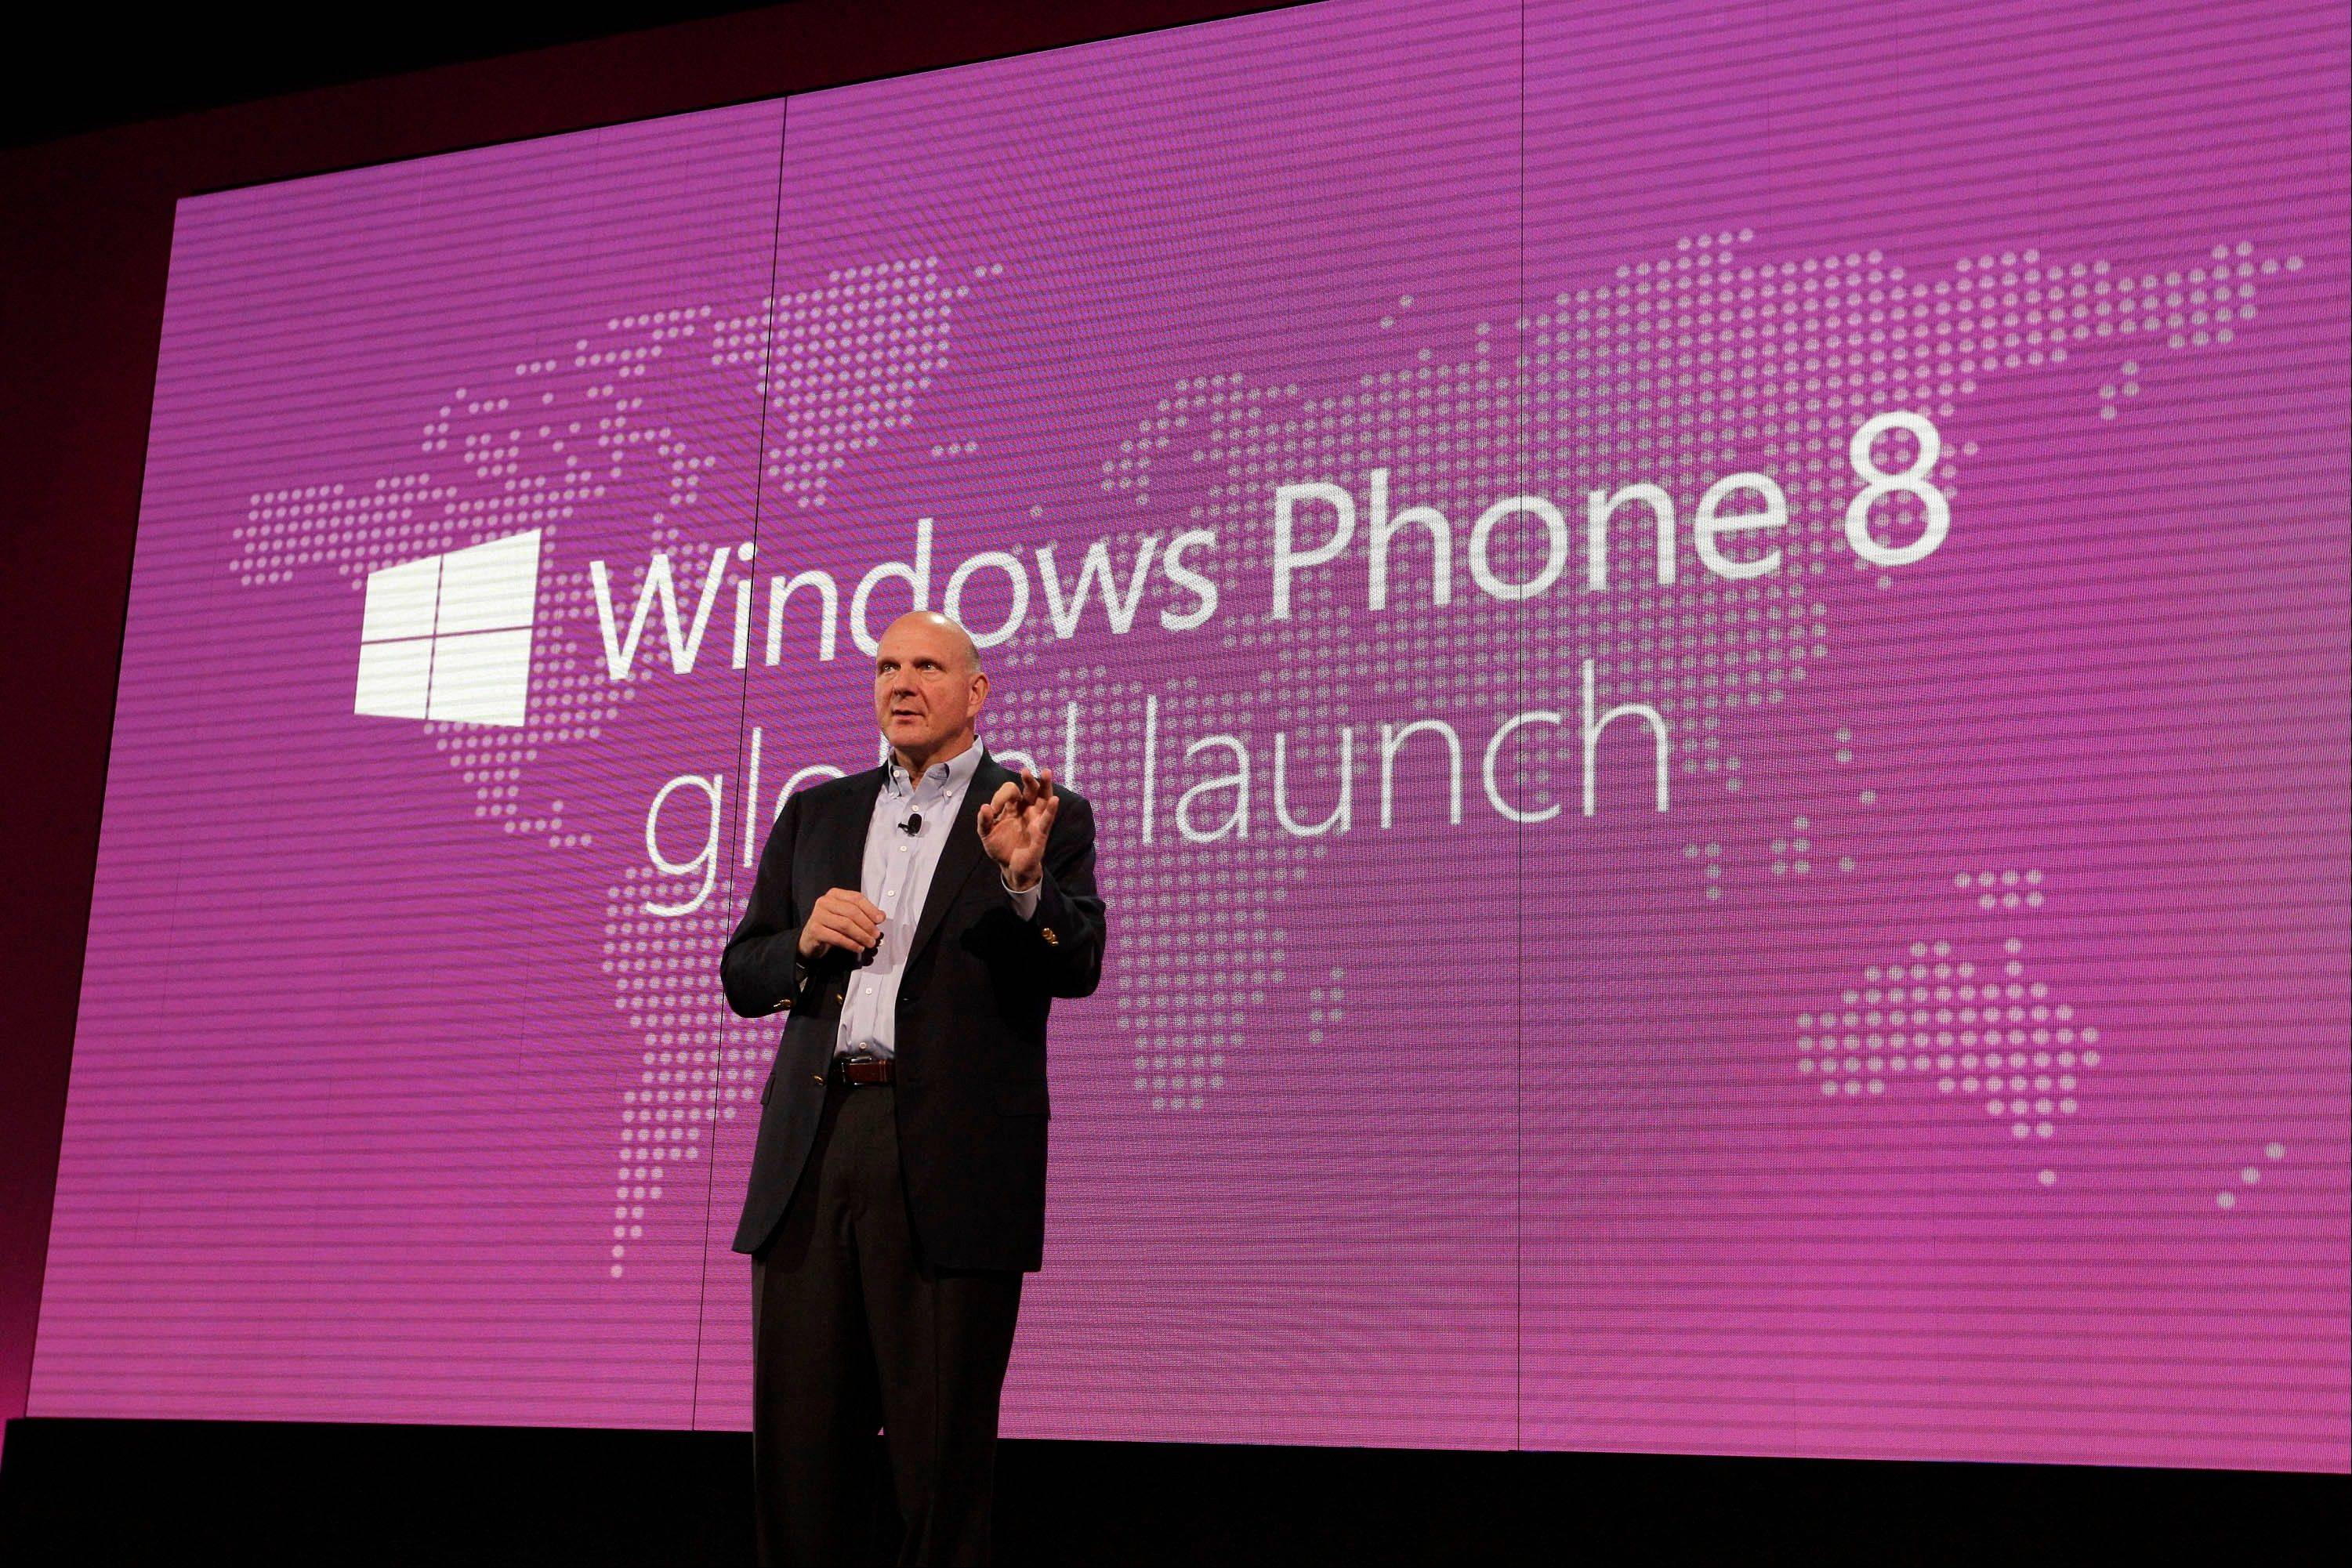 Steve Ballmer, chief executive officer of Microsoft Corp., speaks at an event to unveil Windows Phone 8 software in San Francisco, California. If Windows' new interface takes off, it will be a boon for users, programmers and for the tech industry as a whole. It will make for better, faster, safer computers, and probably ones that last longer, too. But that's a big if.